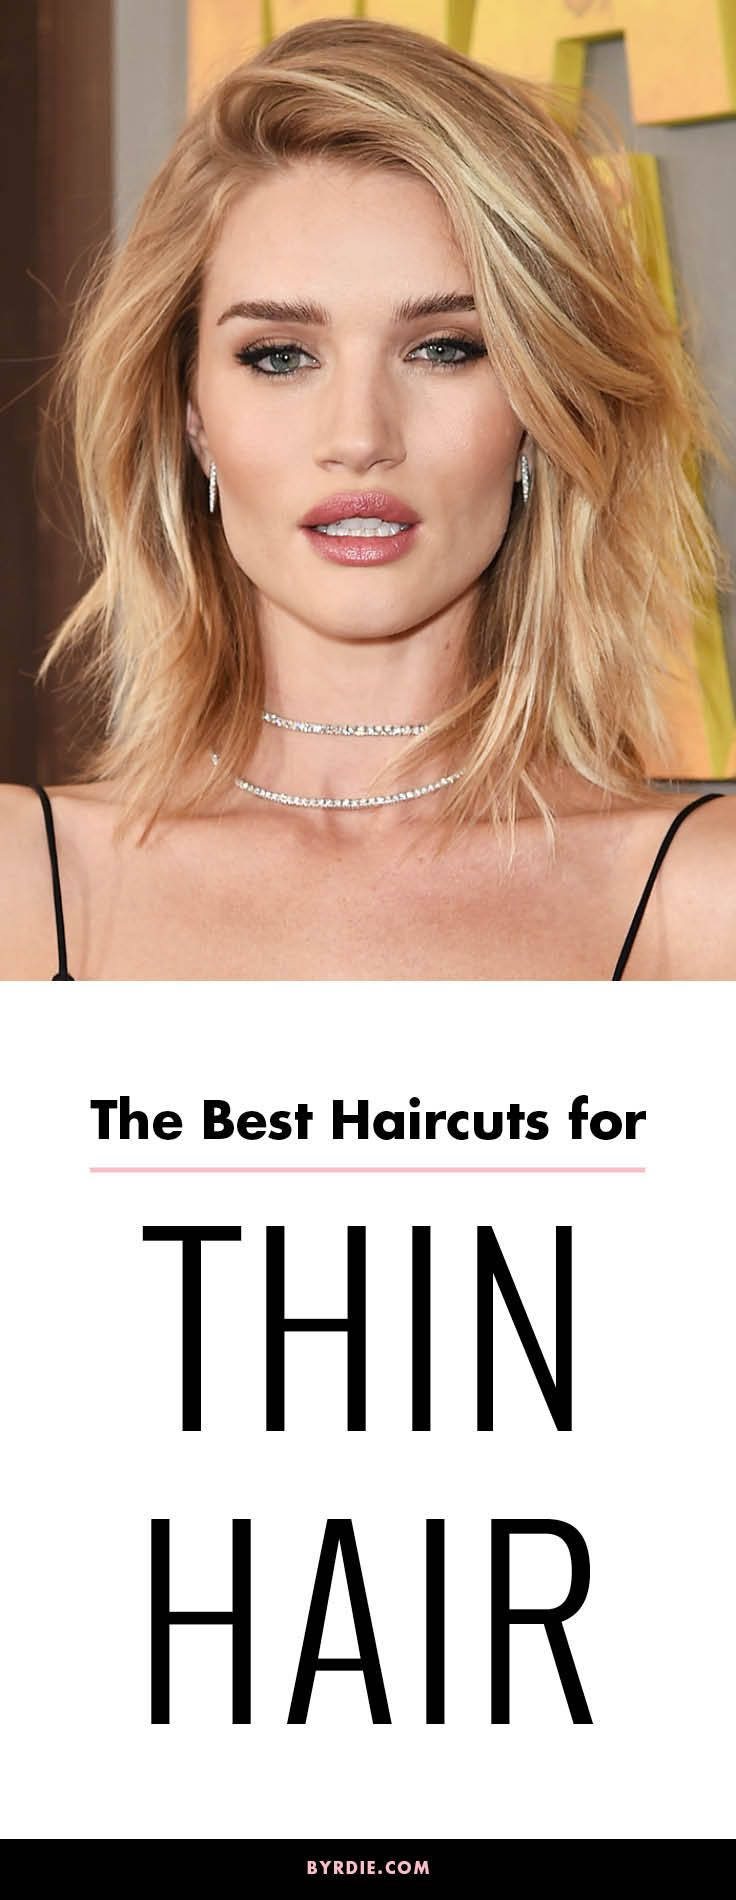 134 best short length haircuts images on pinterest | new hairstyles